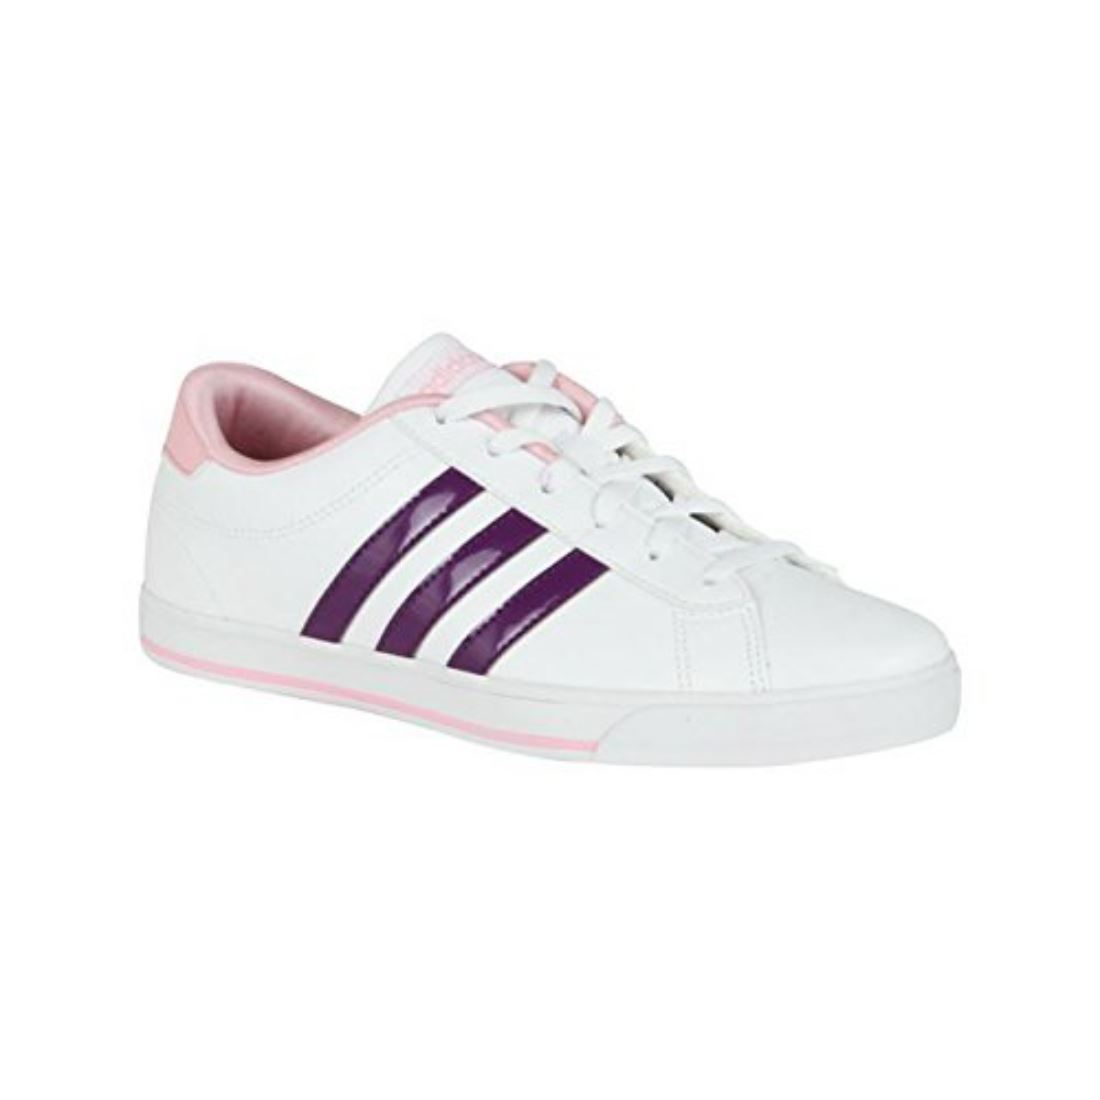 Adidas Neo Daily Trainers